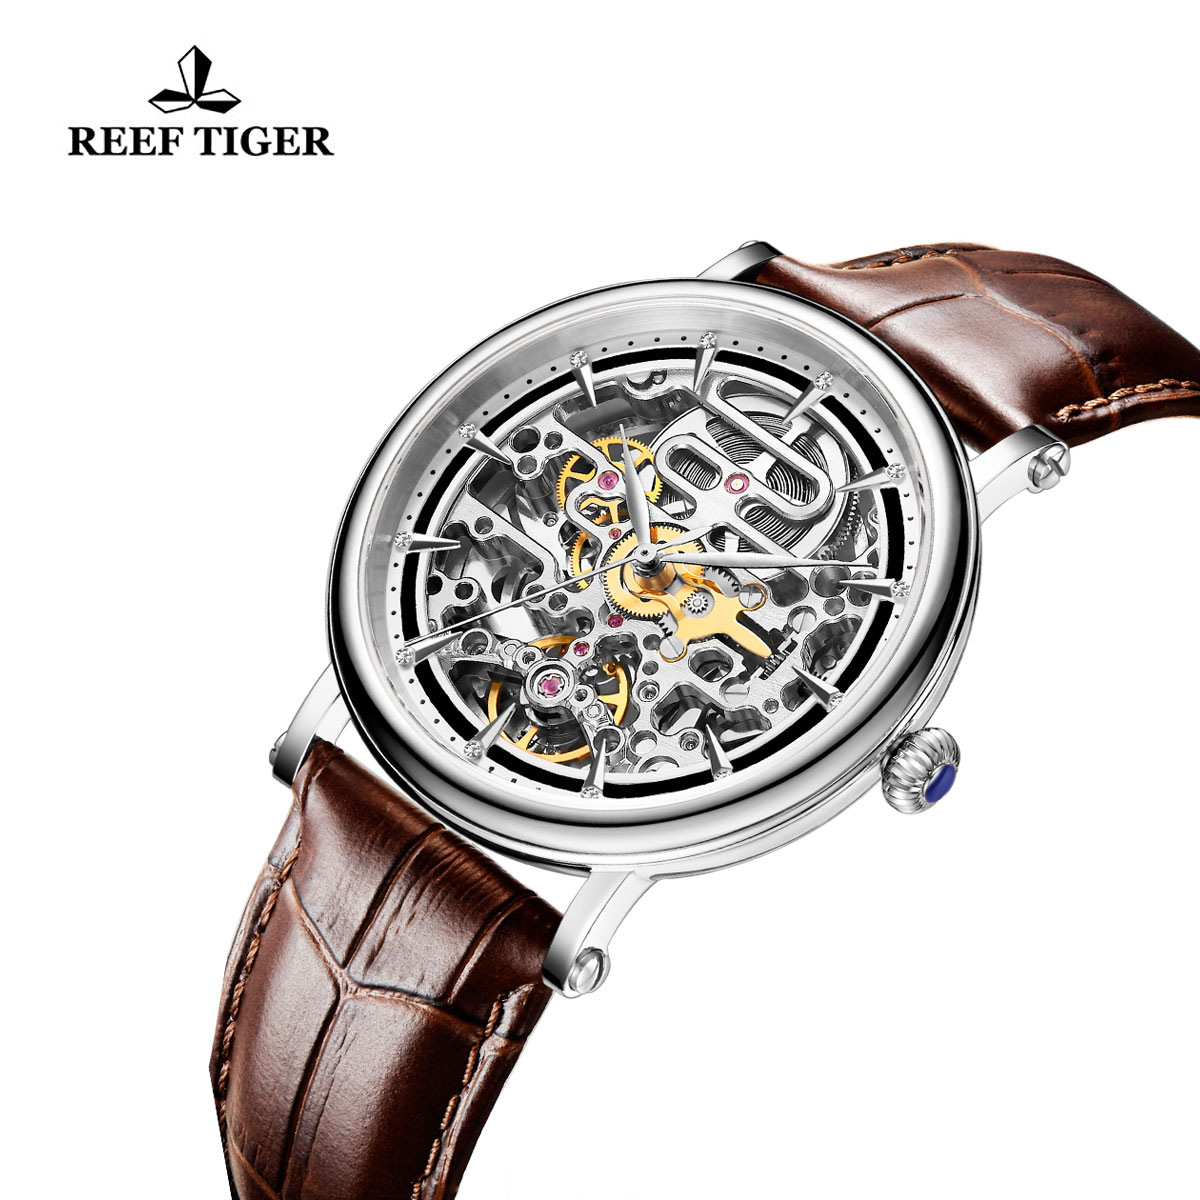 Reef Tiger Casual Watch with Baroque Style Skeleton Dial Steel Case RGA1917-YBB